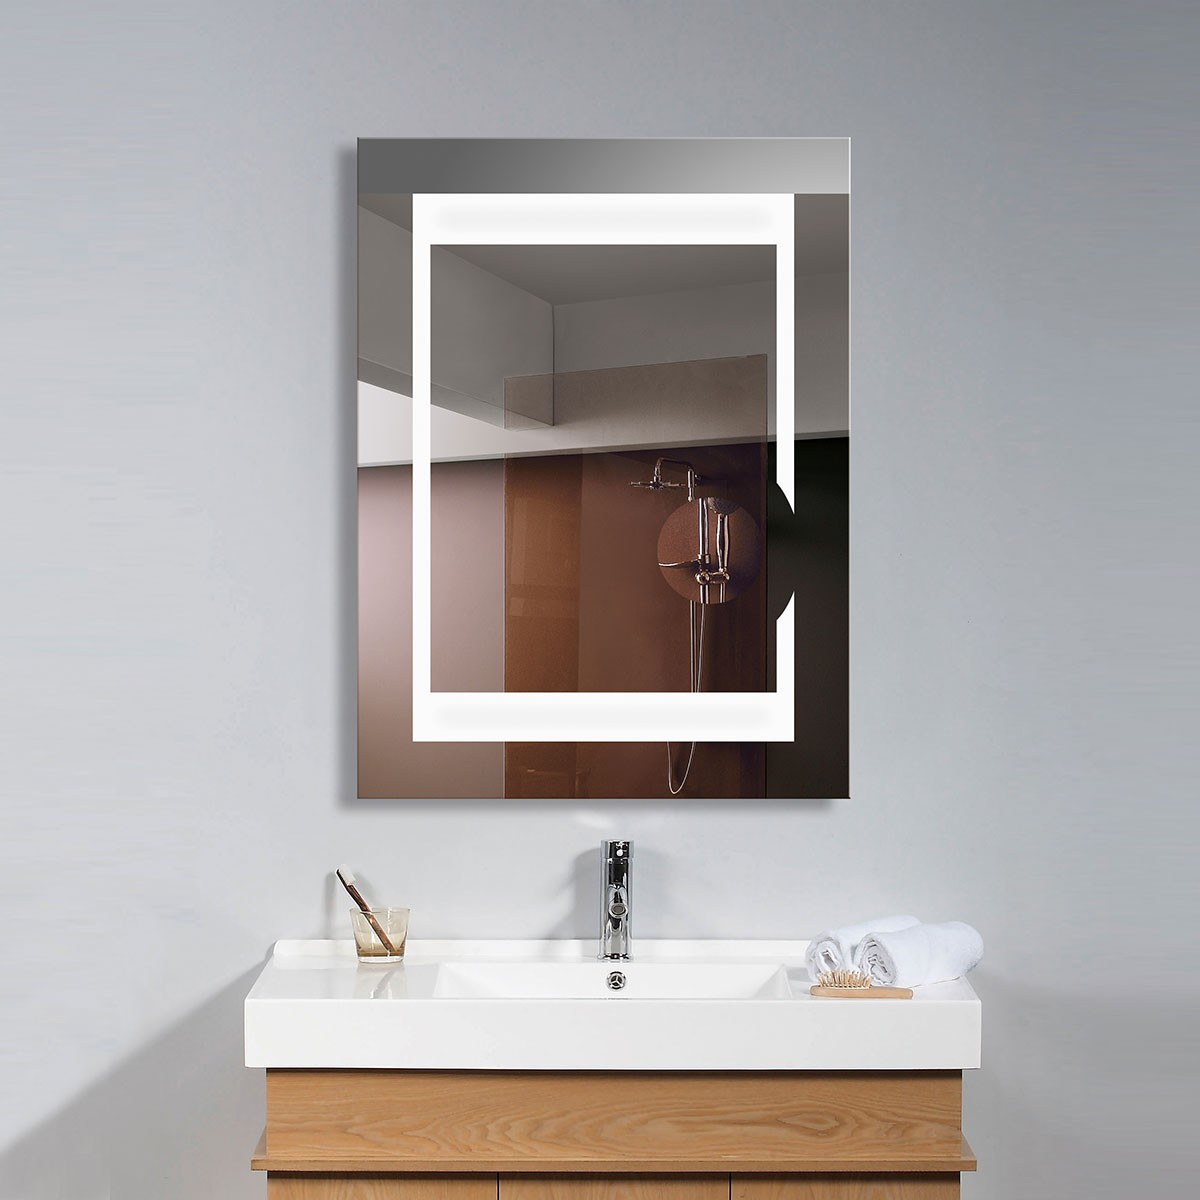 24 x 32 In Vertical LED Mirror with Circular Magnifier, ON/OFF Switch (DK-OD-C280)